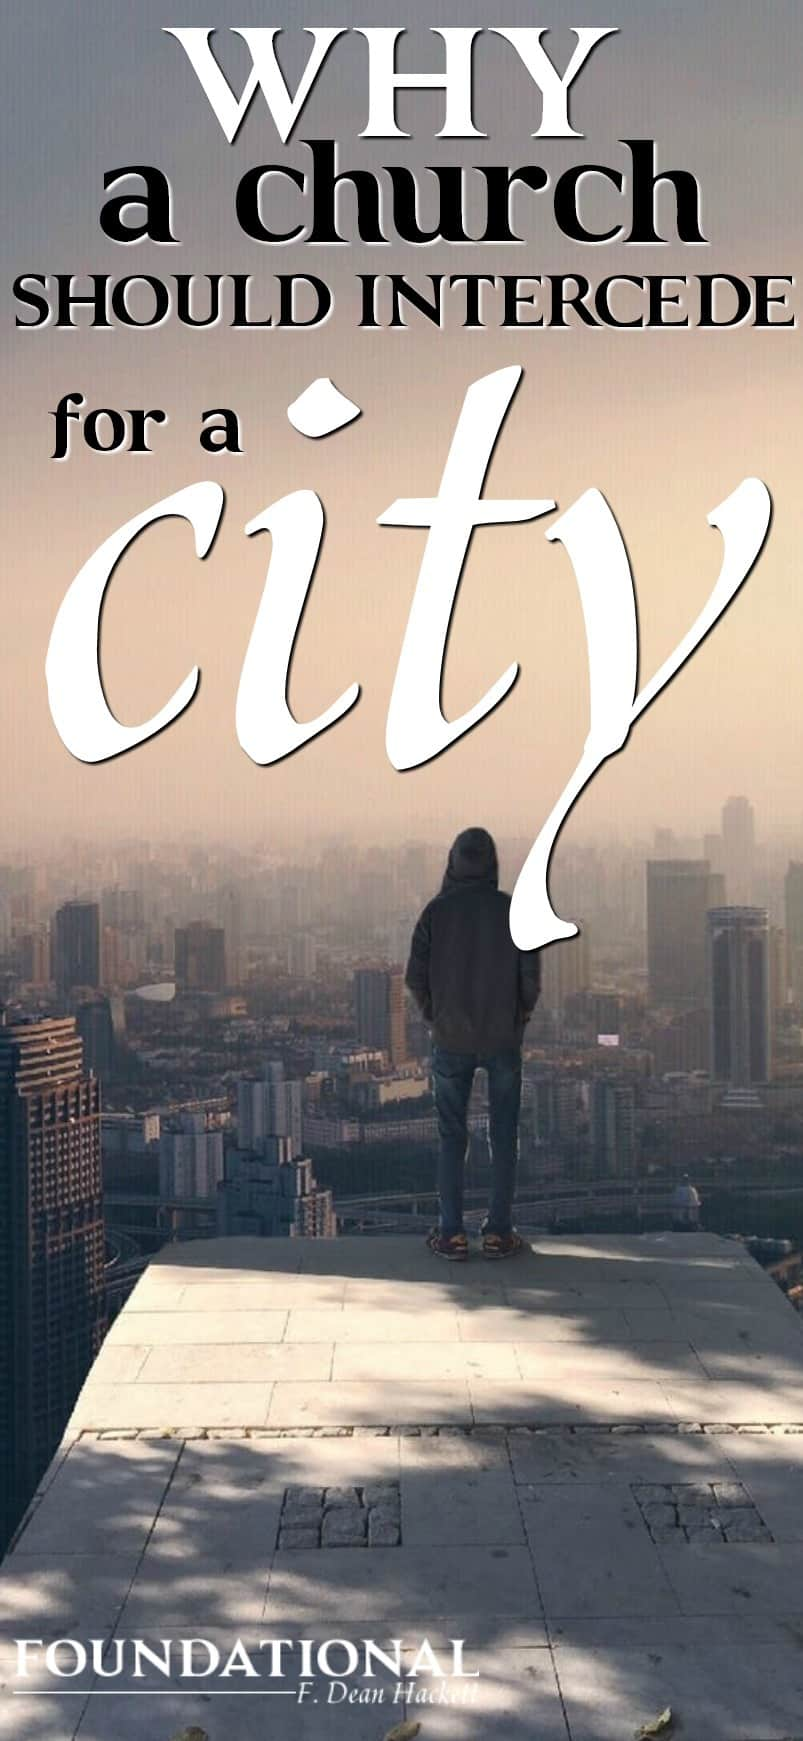 Here is why the church should intercede for a city and why God has ordained the church to be the first line of defense in the authority of Jesus Christ. #Foundational #prayer #intercession #spiritualauthority